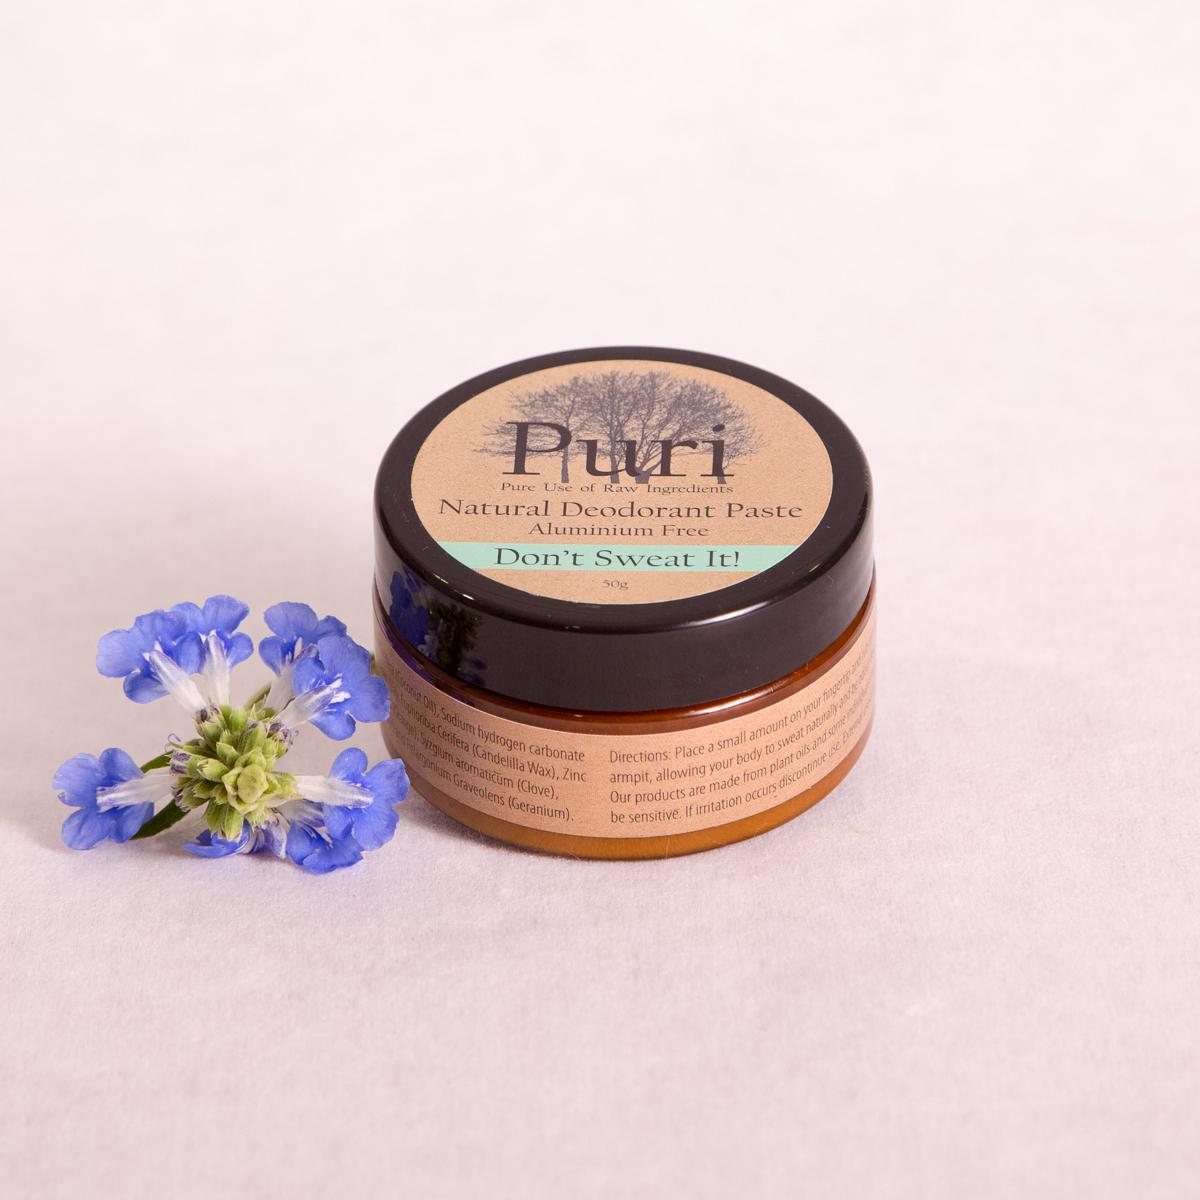 'Don't Sweat It' Natural Deodorant Paste - 50gm - Deodorant - Throw Some Seeds - Nature Inspired Gifts for the Home & Garden